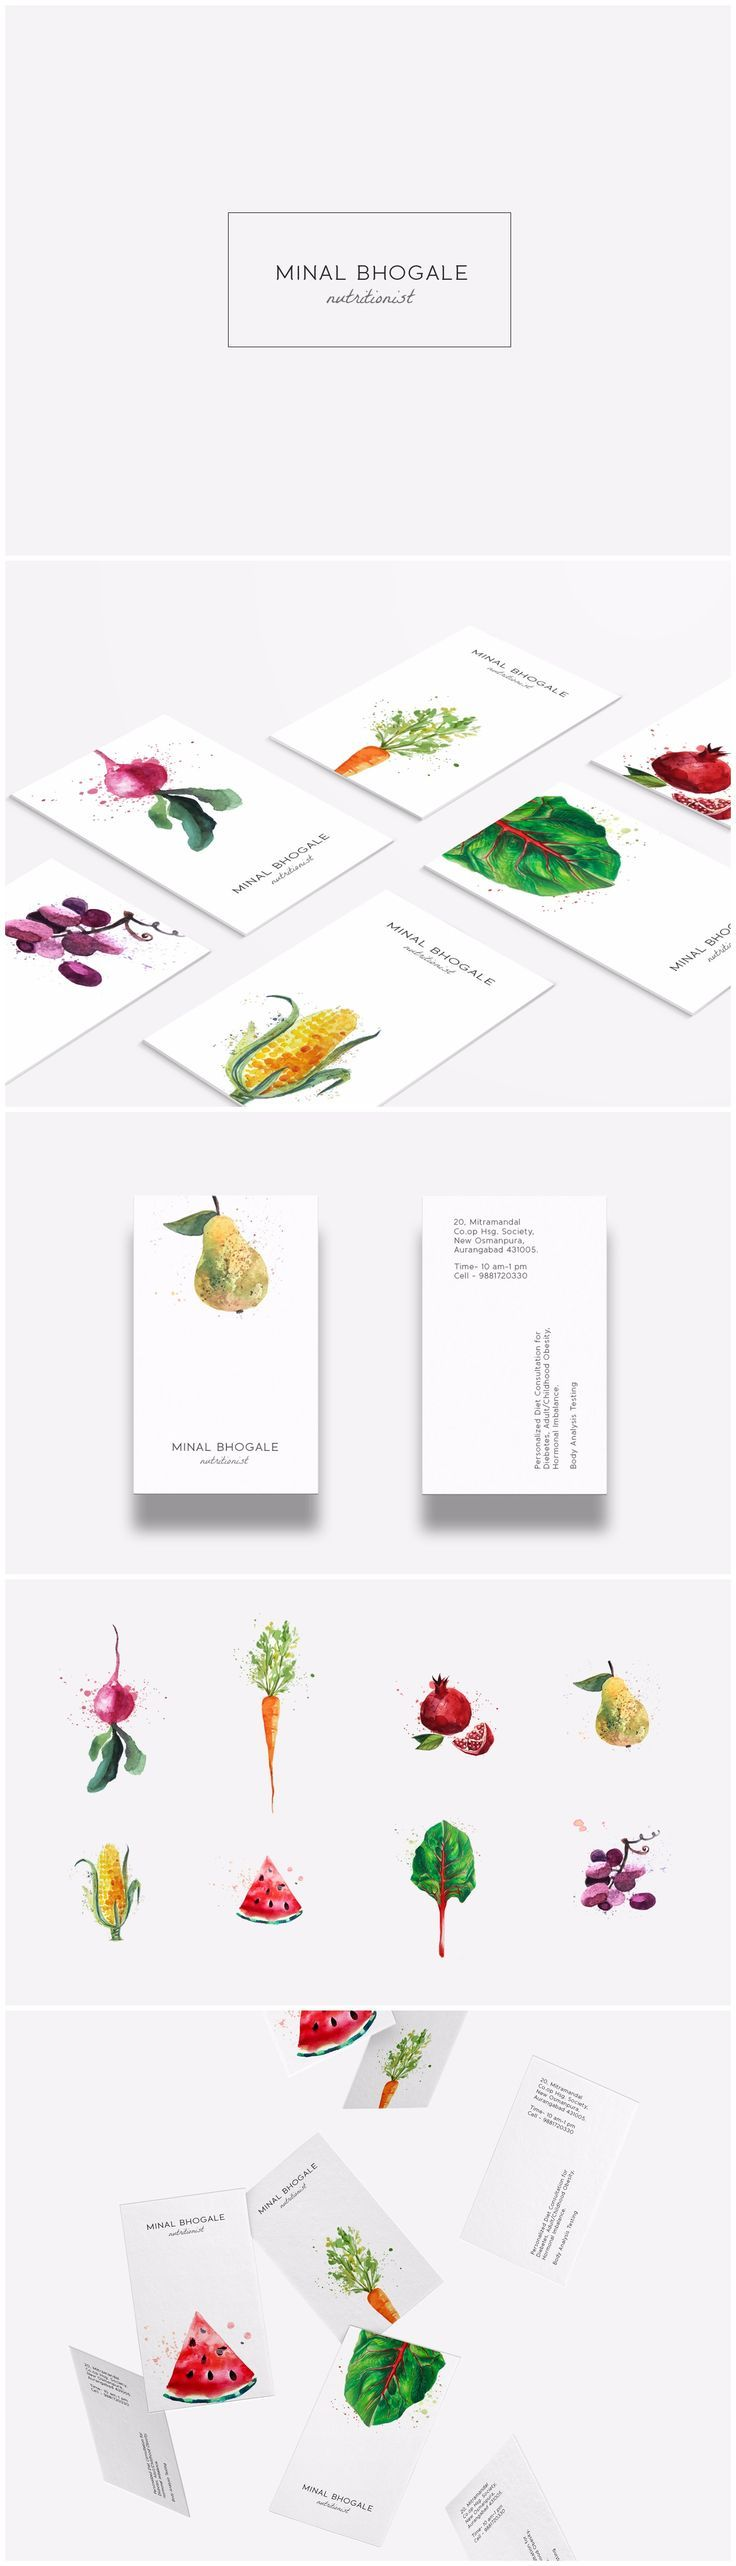 Nutritionist Brand identity design ~ Minal Bhogale is an Aurangabad based Dietician  Nutritionist offering personalized diet consultation for diabetes, hormonal imbalance, child/adult obesity. We designed an identity for her that would promote fitness, freshness and healthy food habits.